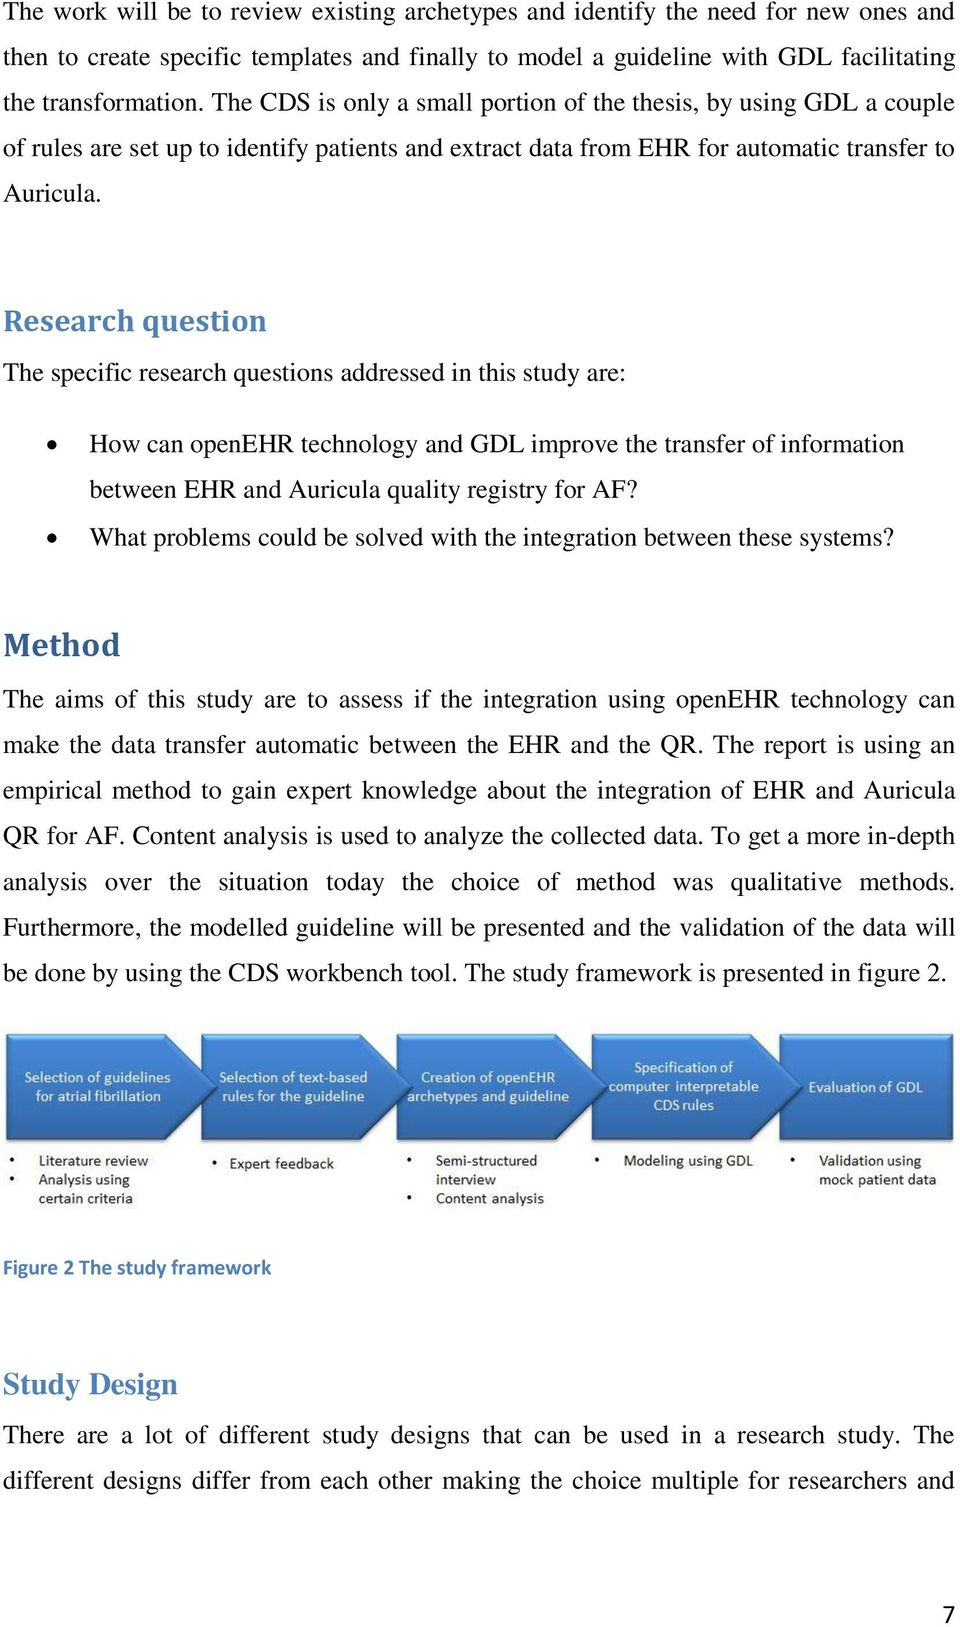 Research question The specific research questions addressed in this study are: How can openehr technology and GDL improve the transfer of information between EHR and Auricula quality registry for AF?